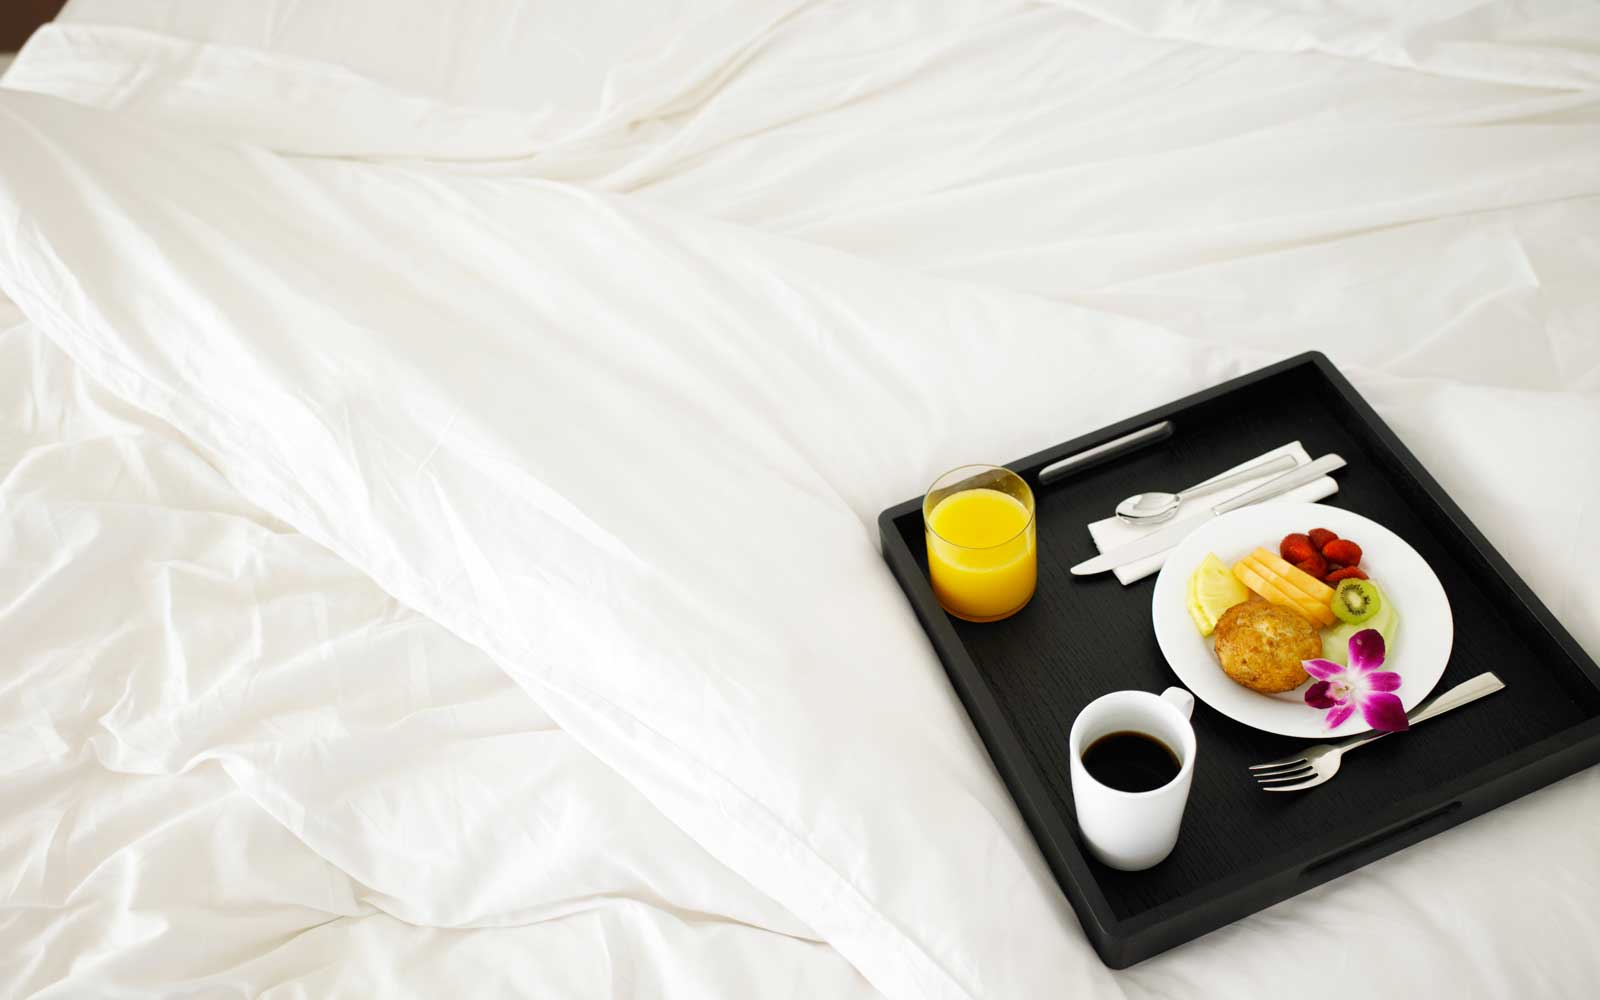 Moms don't want breakfast in bed